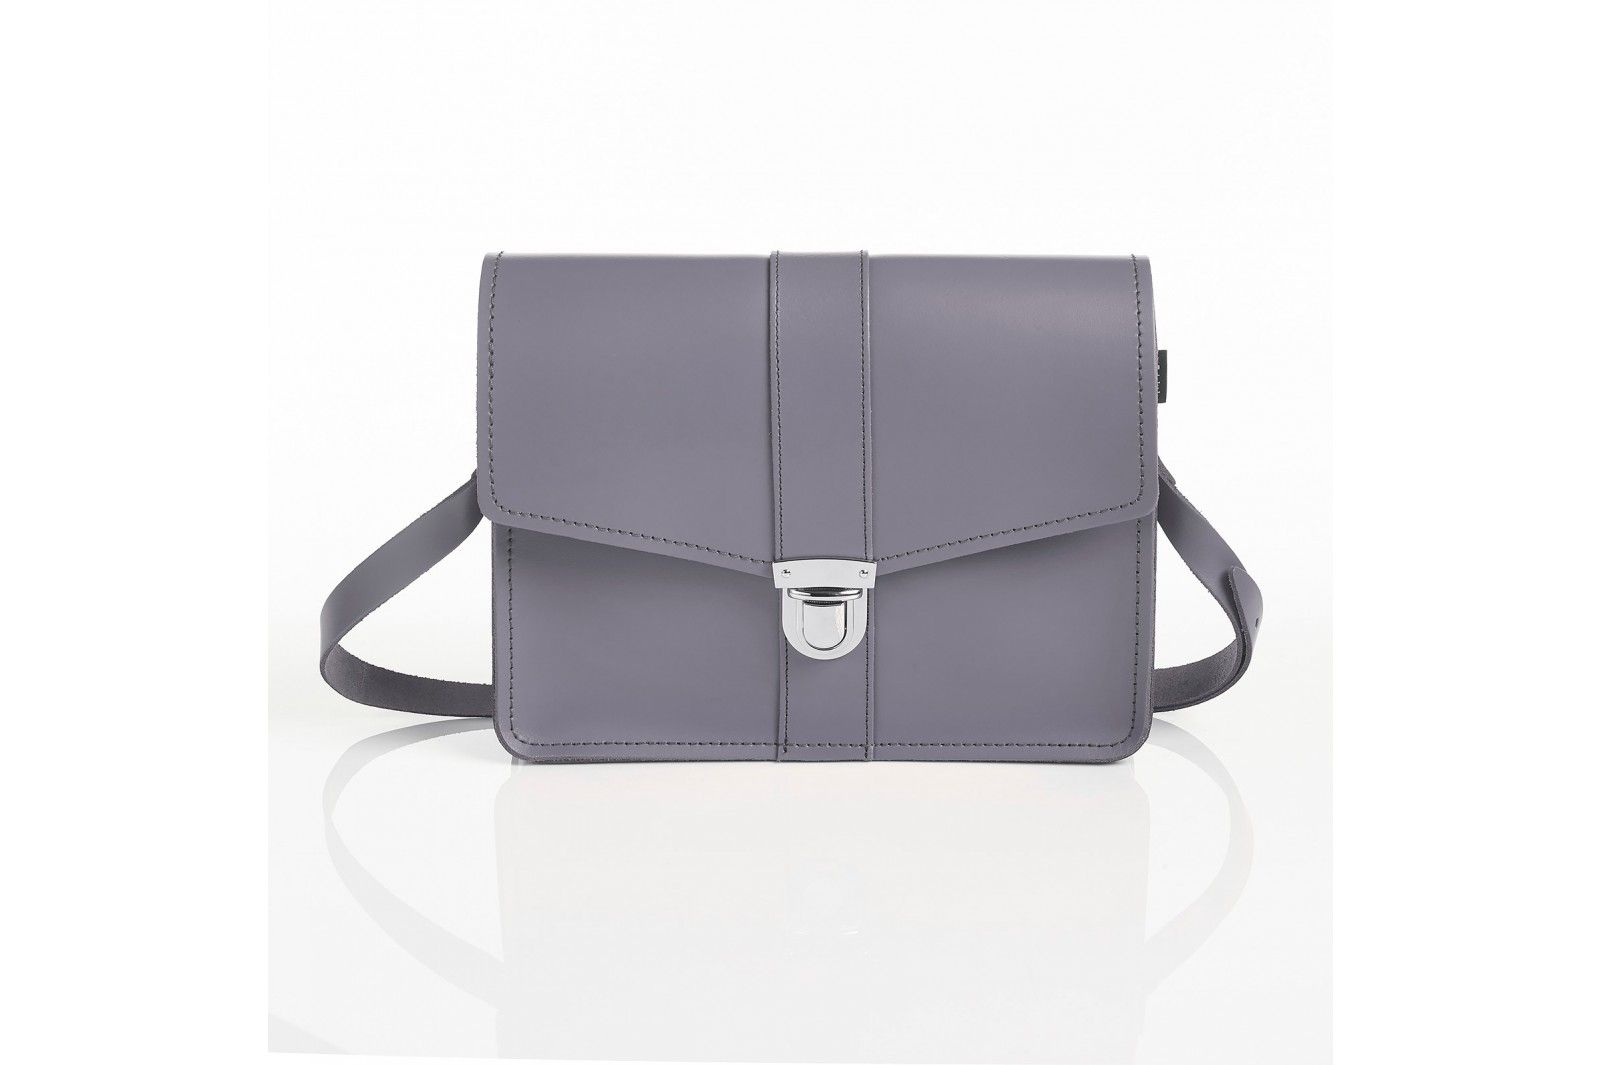 Zatchels Stanford Shoulder Bag In Lilac Grey